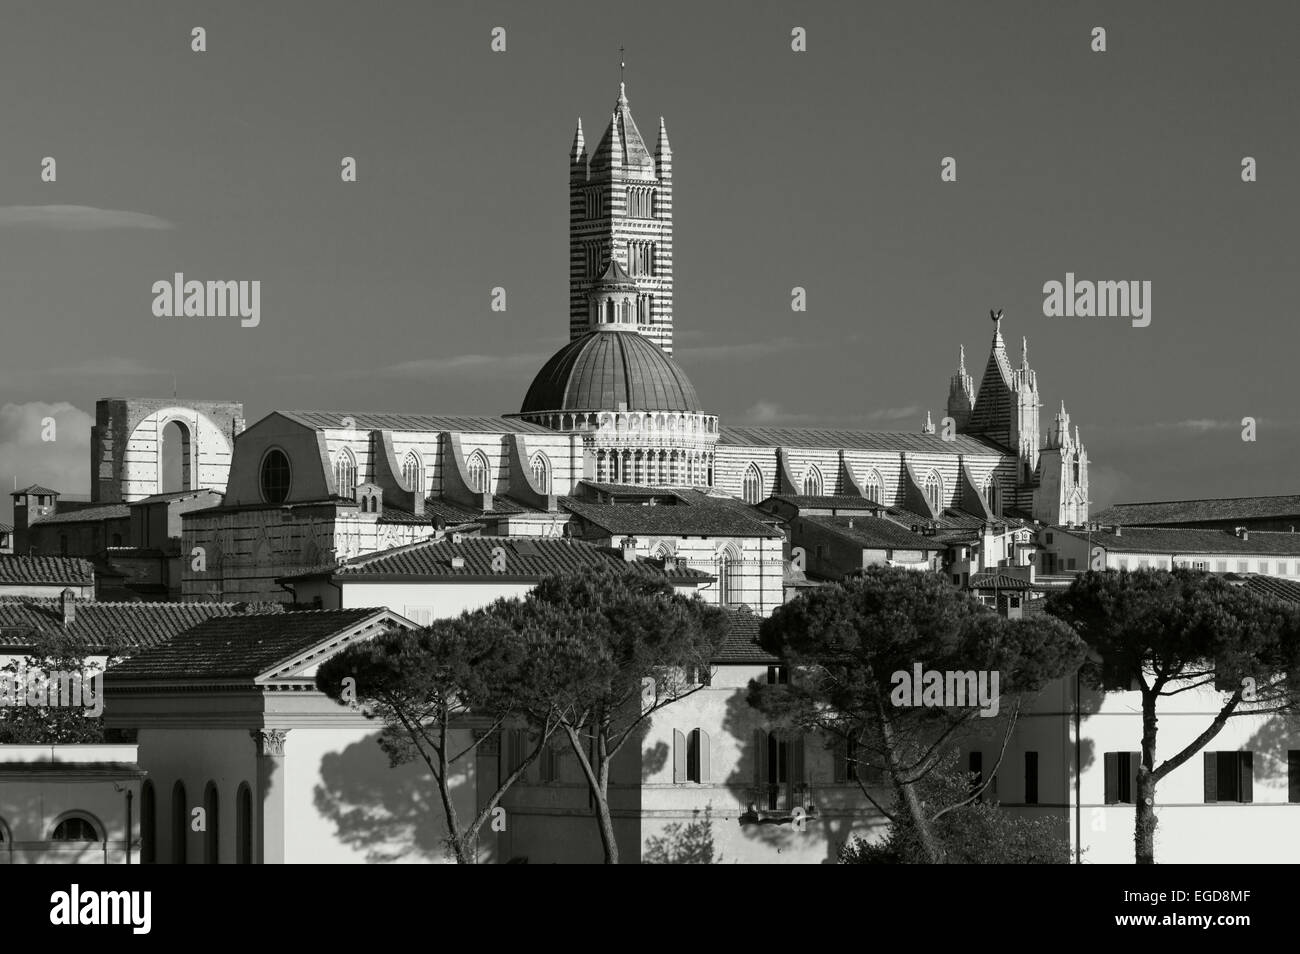 Townscape with Duomo Santa Maria, Siena, UNESCO World Heritage Site, Tuscany, Italy, Europe - Stock Image